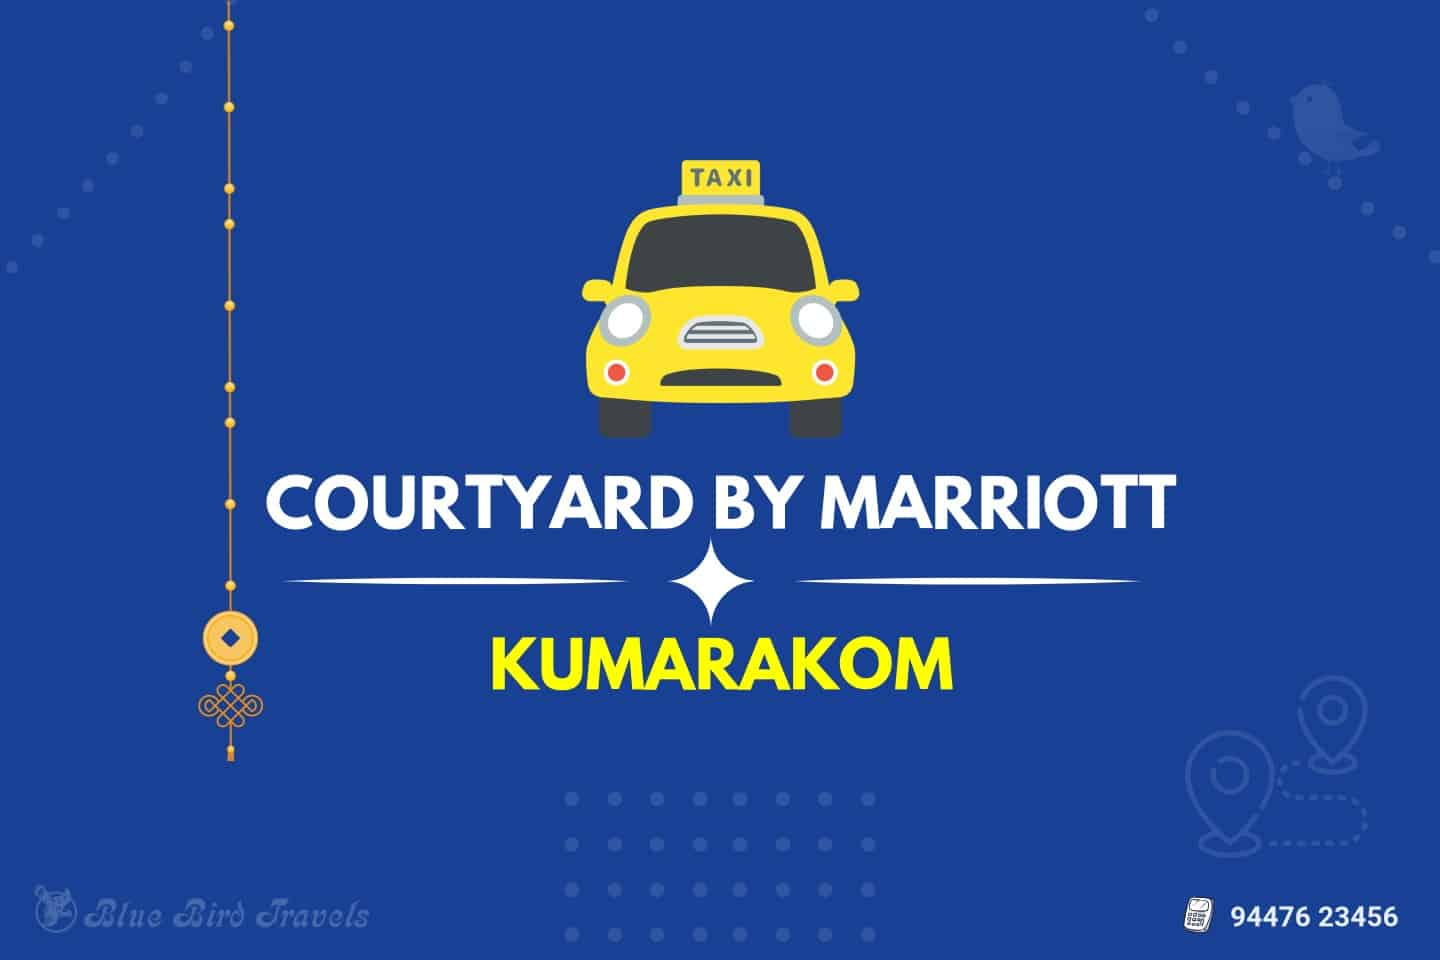 Courtyard by Marriott to Kumarakom Taxi (Featured Image)